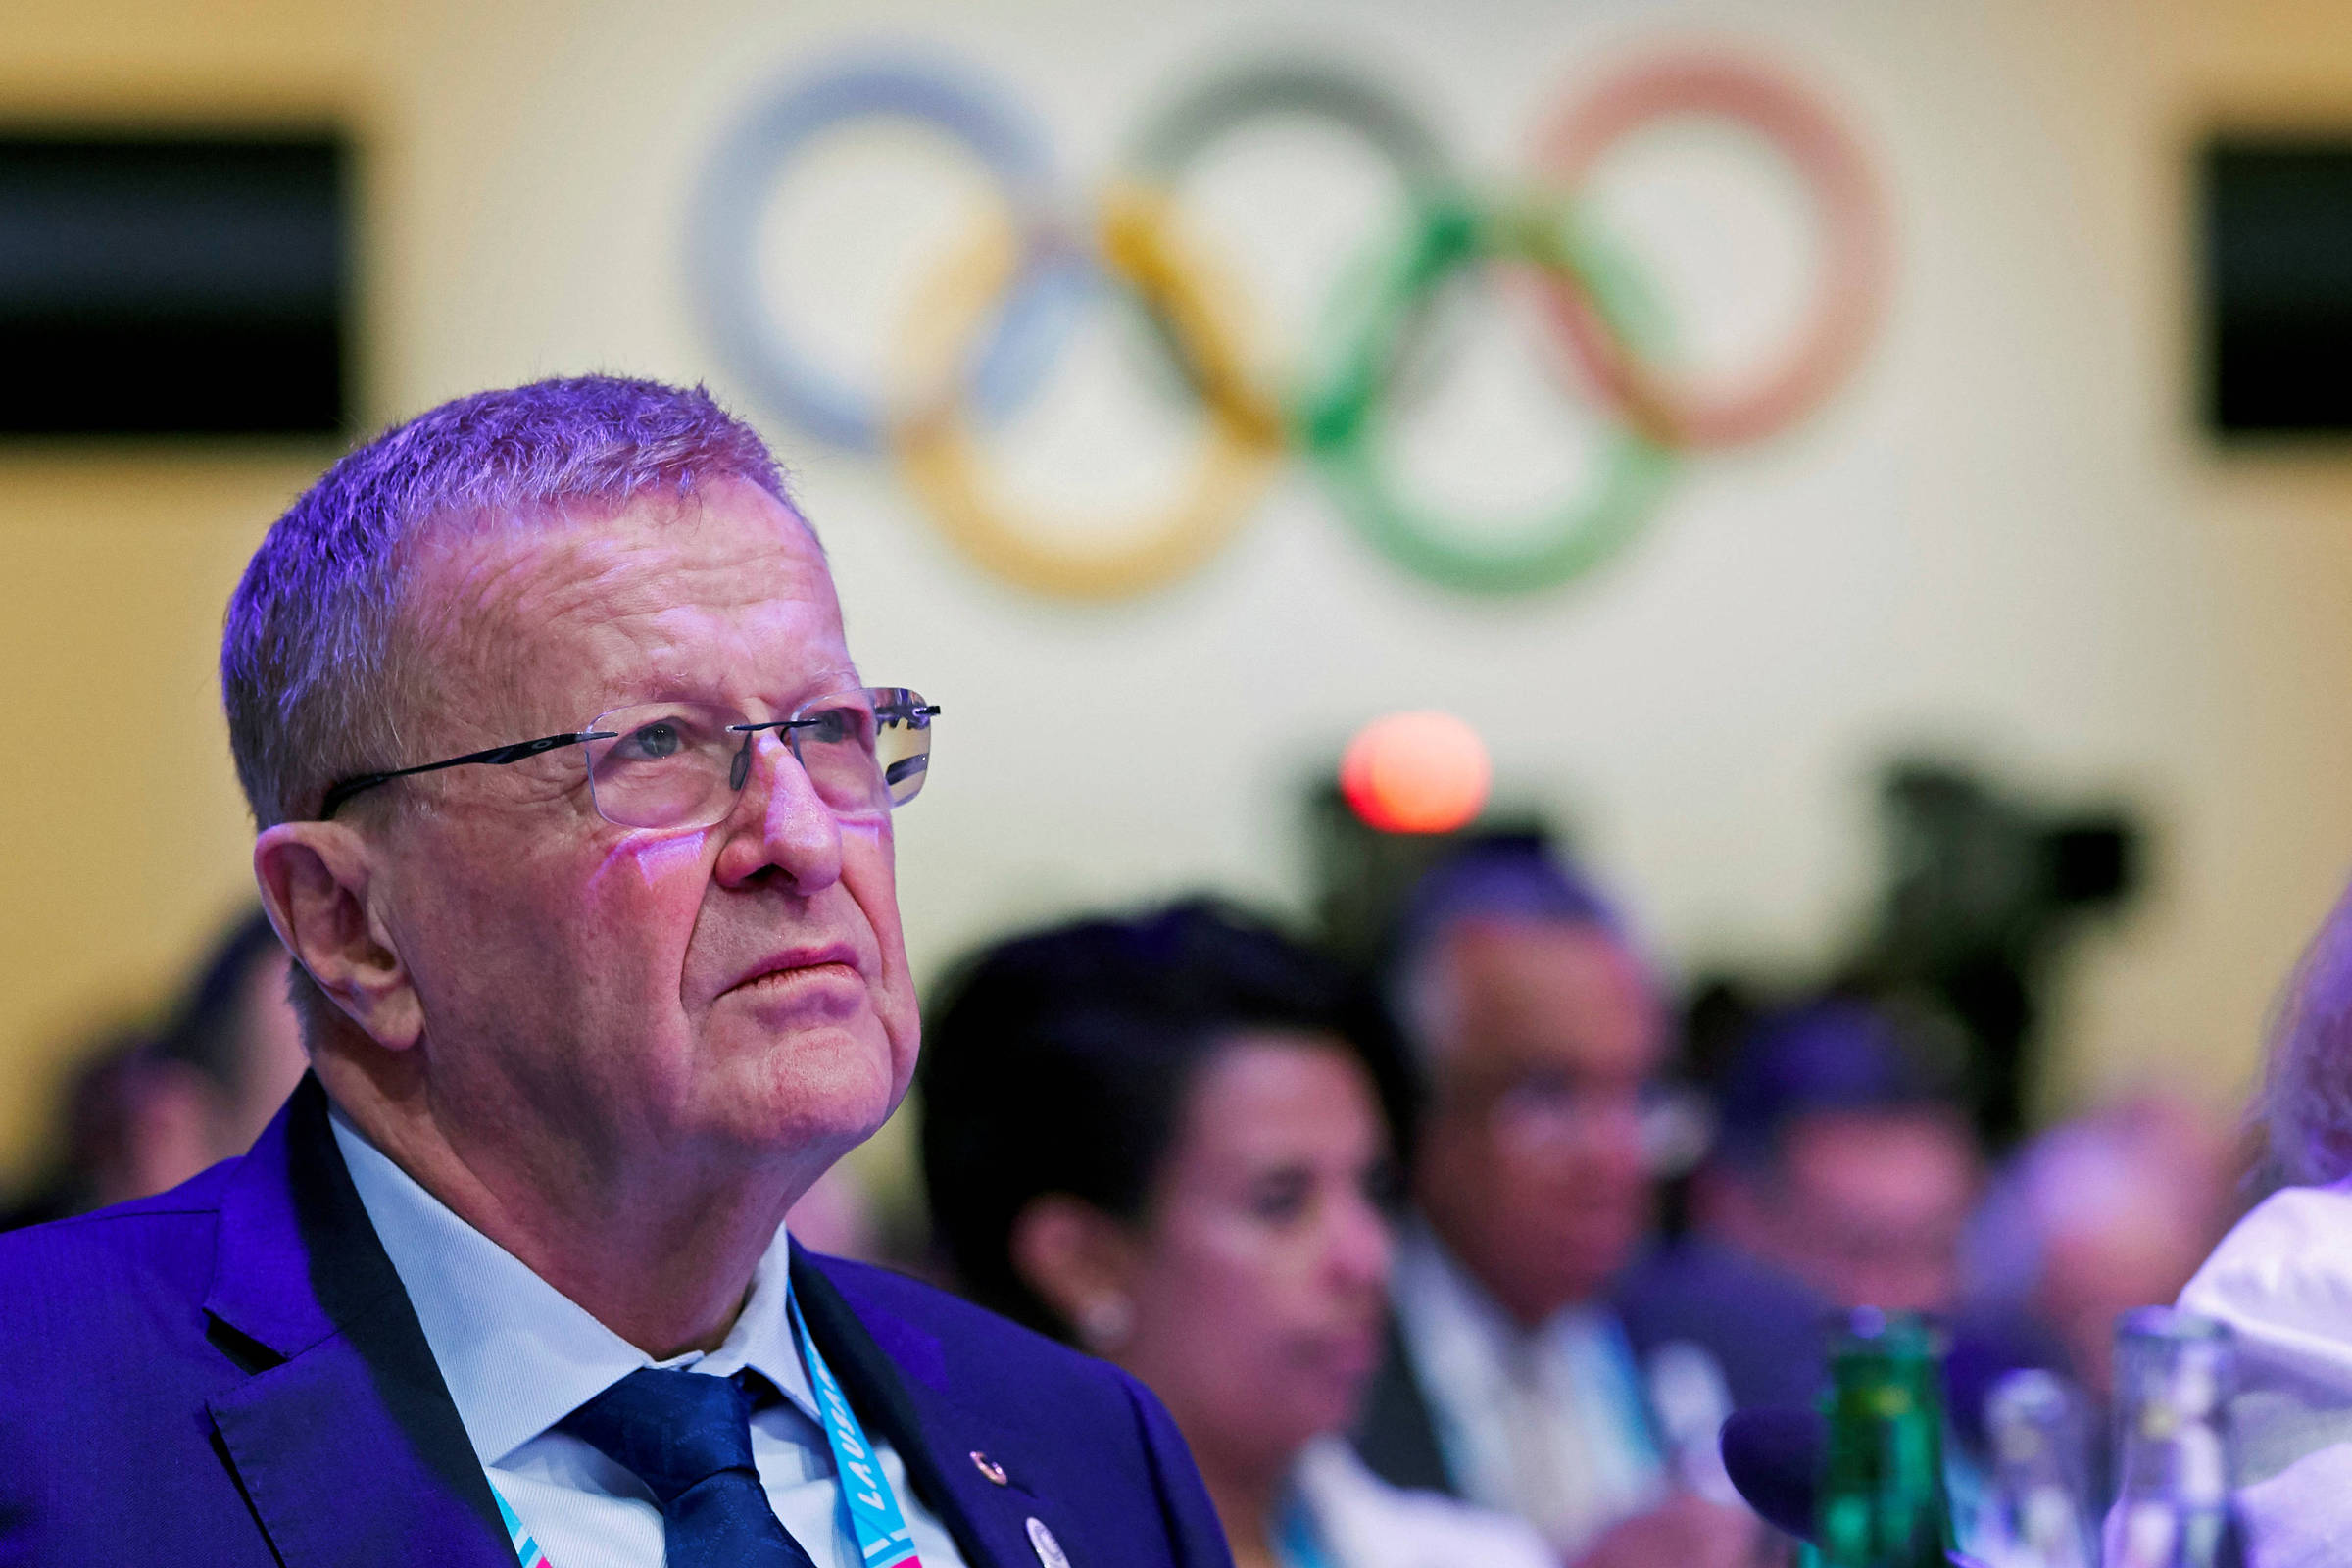 IOC member talks about real problems for Olympics and cites Brazil